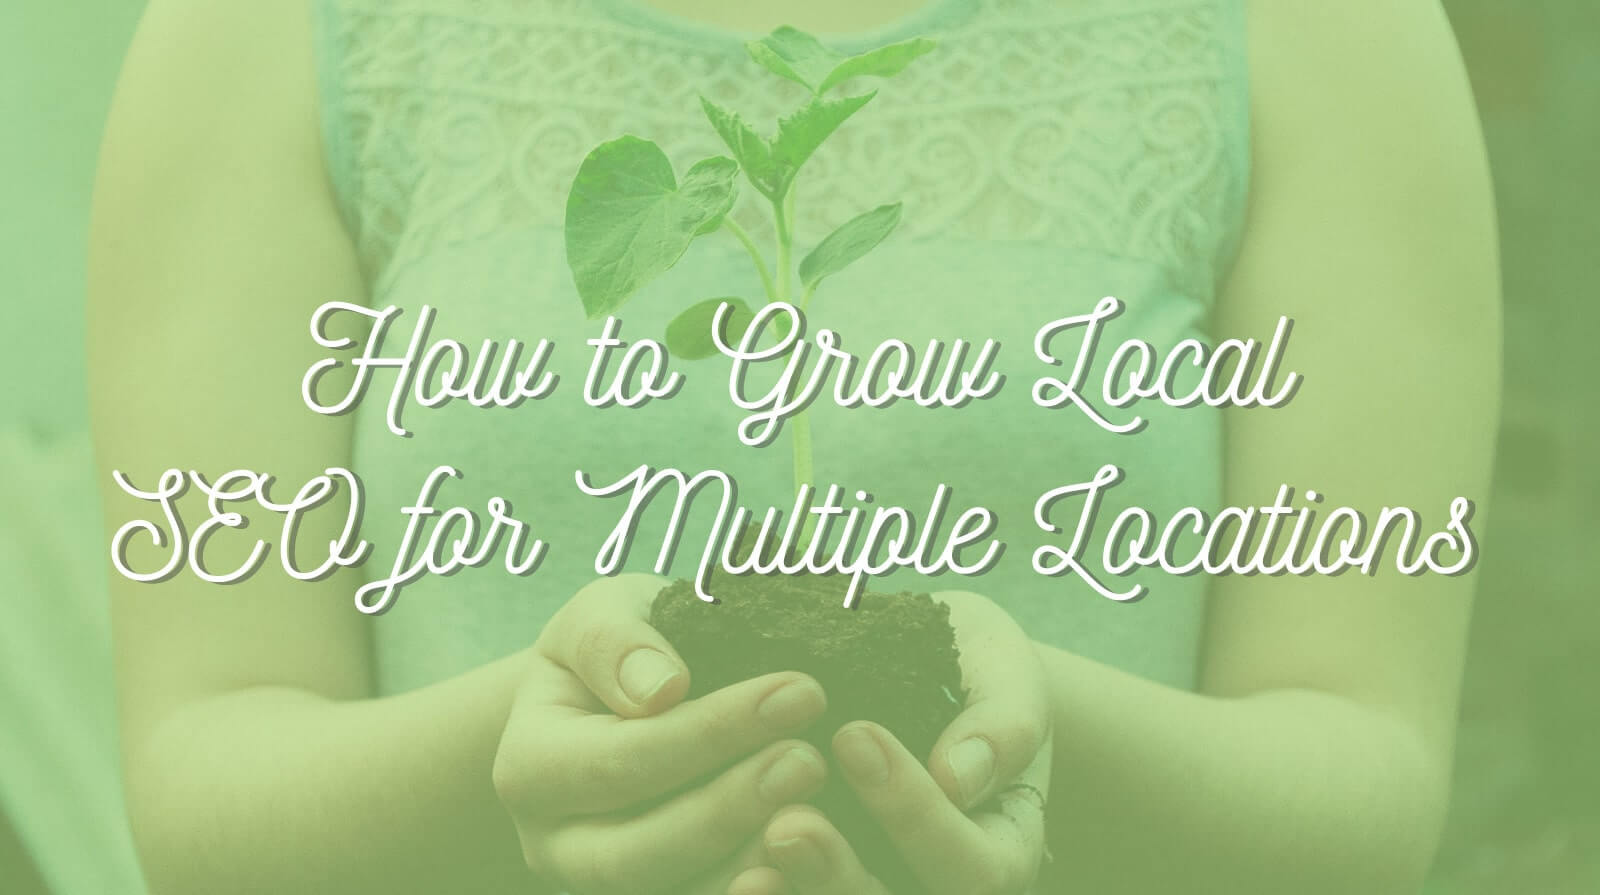 How to Grow Local SEO for Multiple Locations